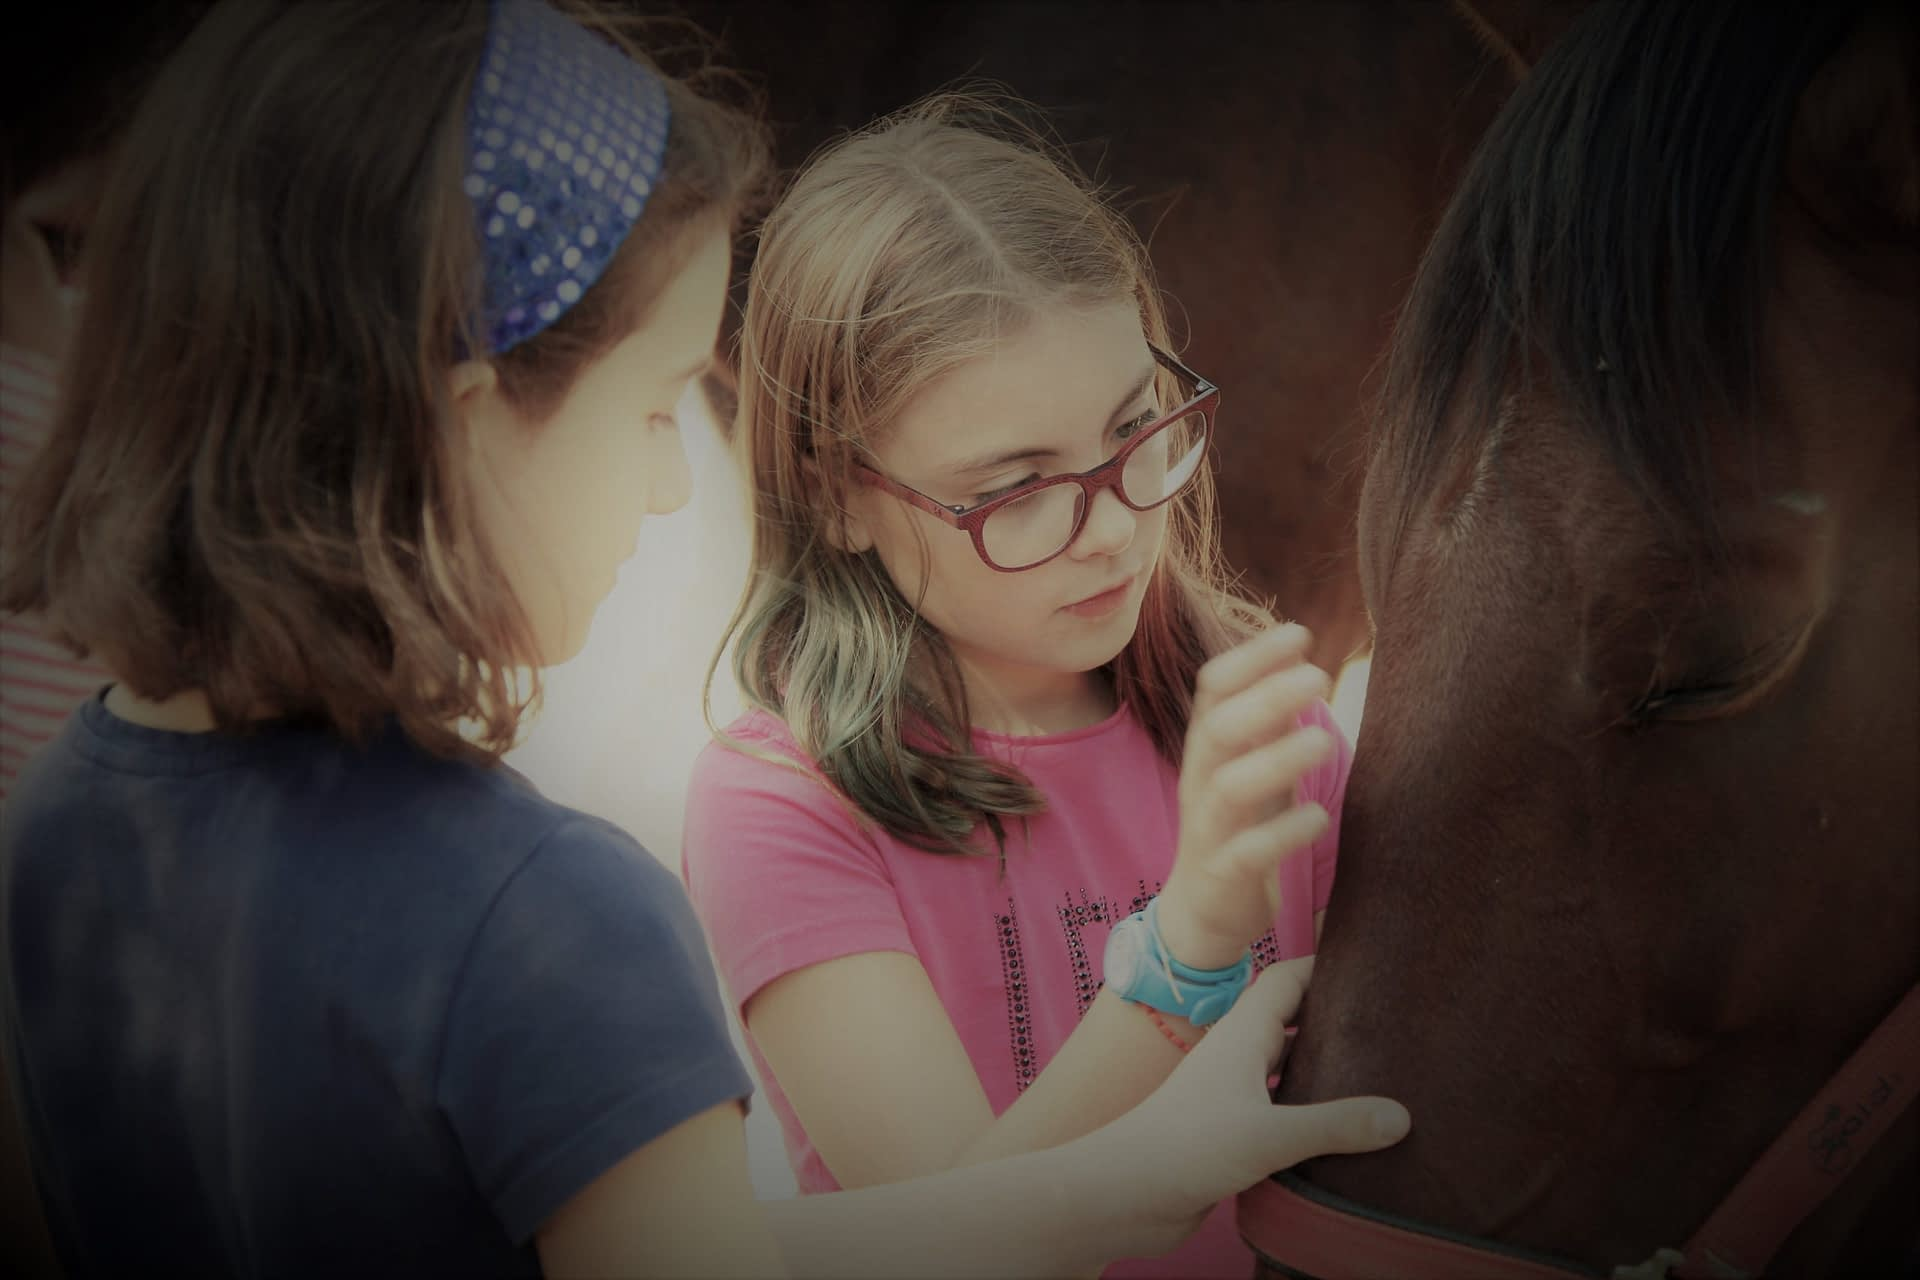 Horses to educate emotionally from childhood